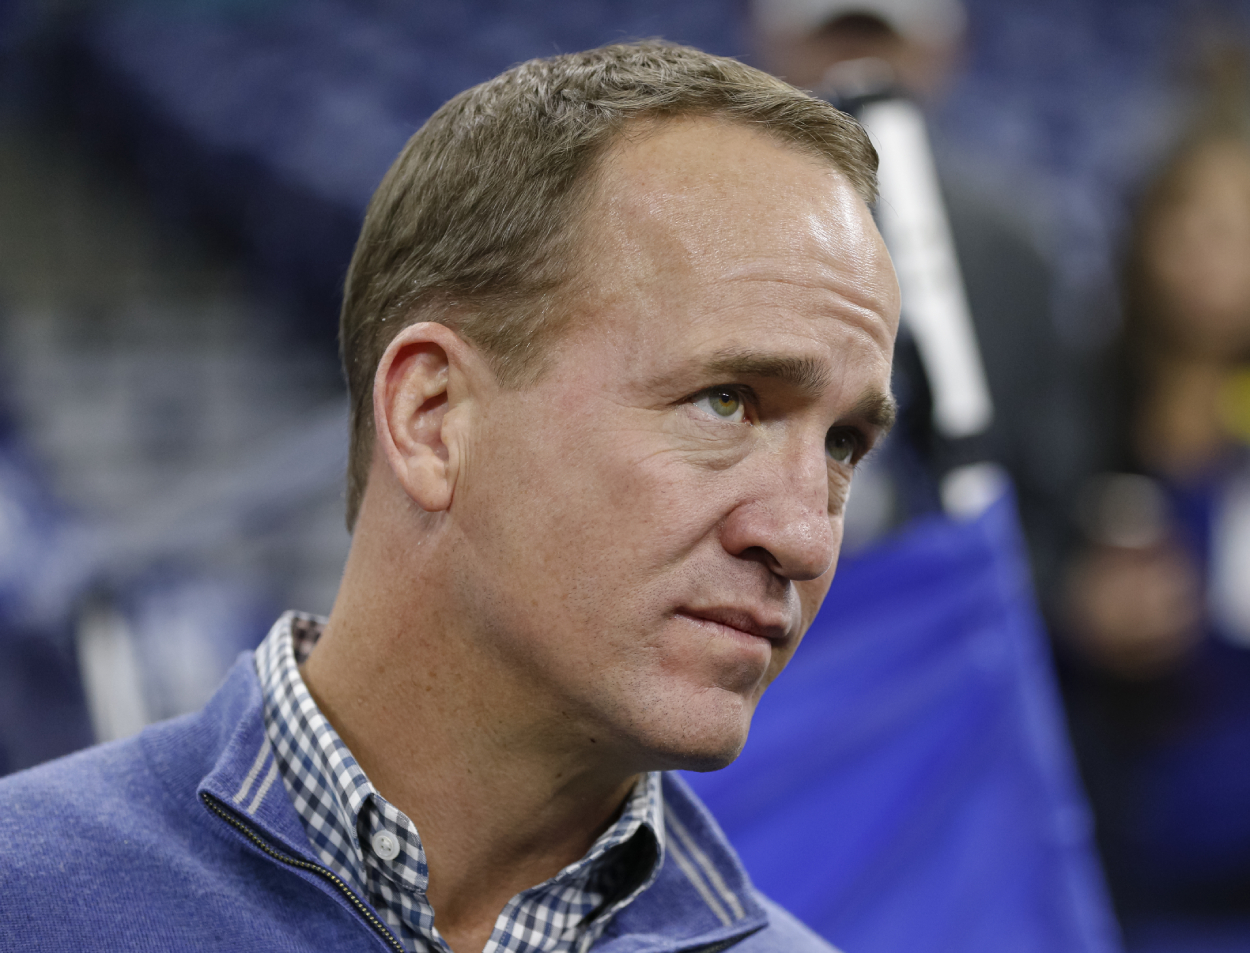 Former No. 1 draft pick with the Colts, Peyton Manning, prior to a game between the Colts and Dolphins in 2019.